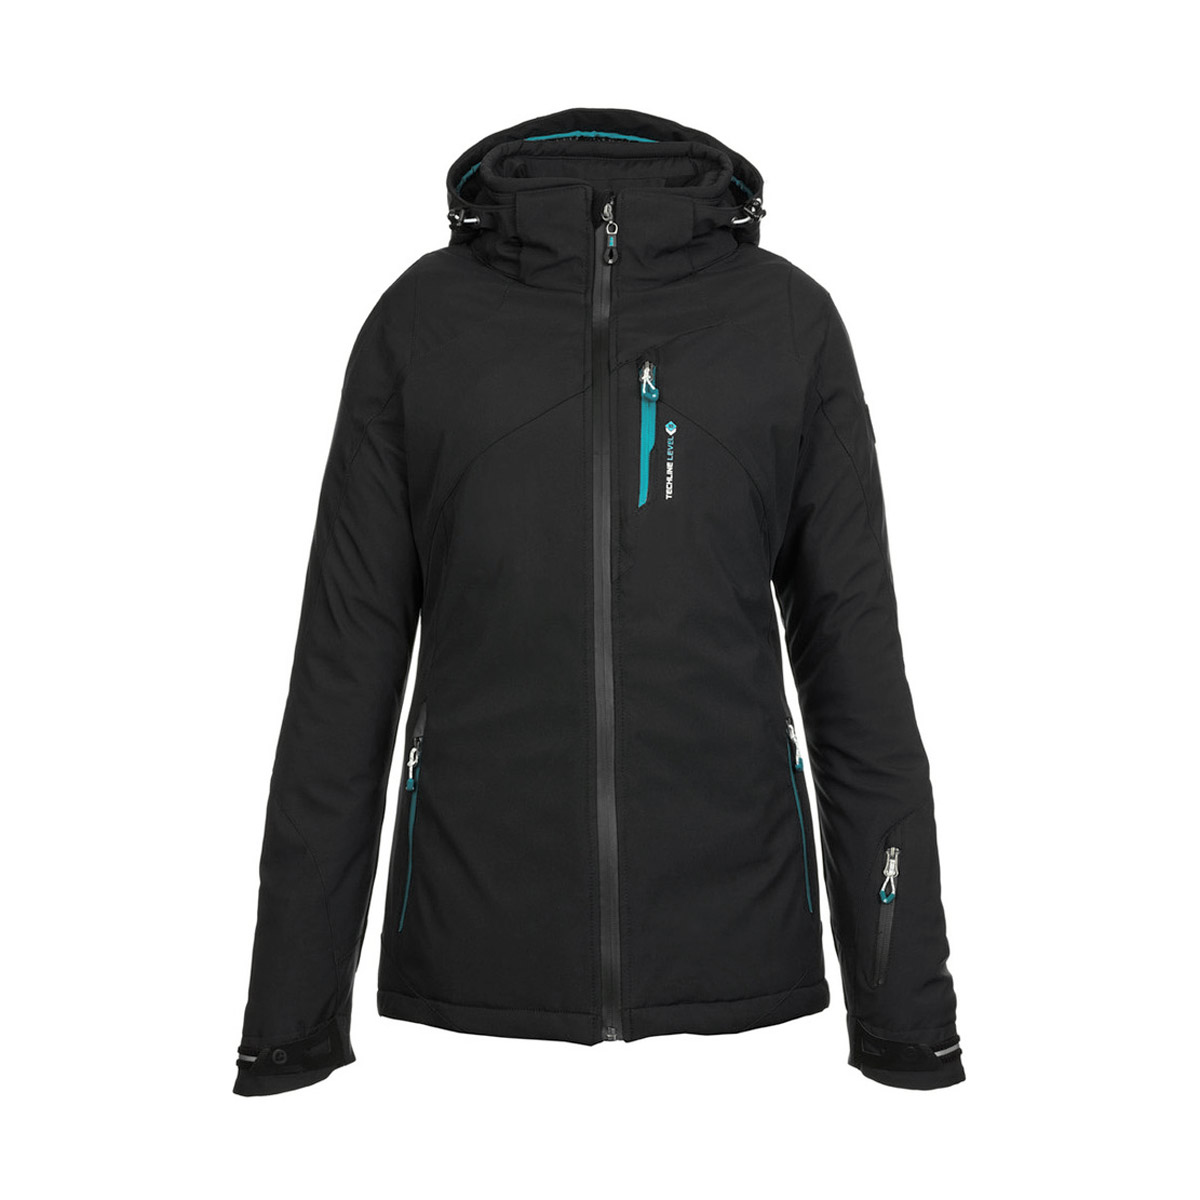 wholesale dealer 7da76 f522a Details zu KILLTEC FAUSTINA 2015/16 Damen Softshell Level 10 Skijacke  Snowboardjacke 26877